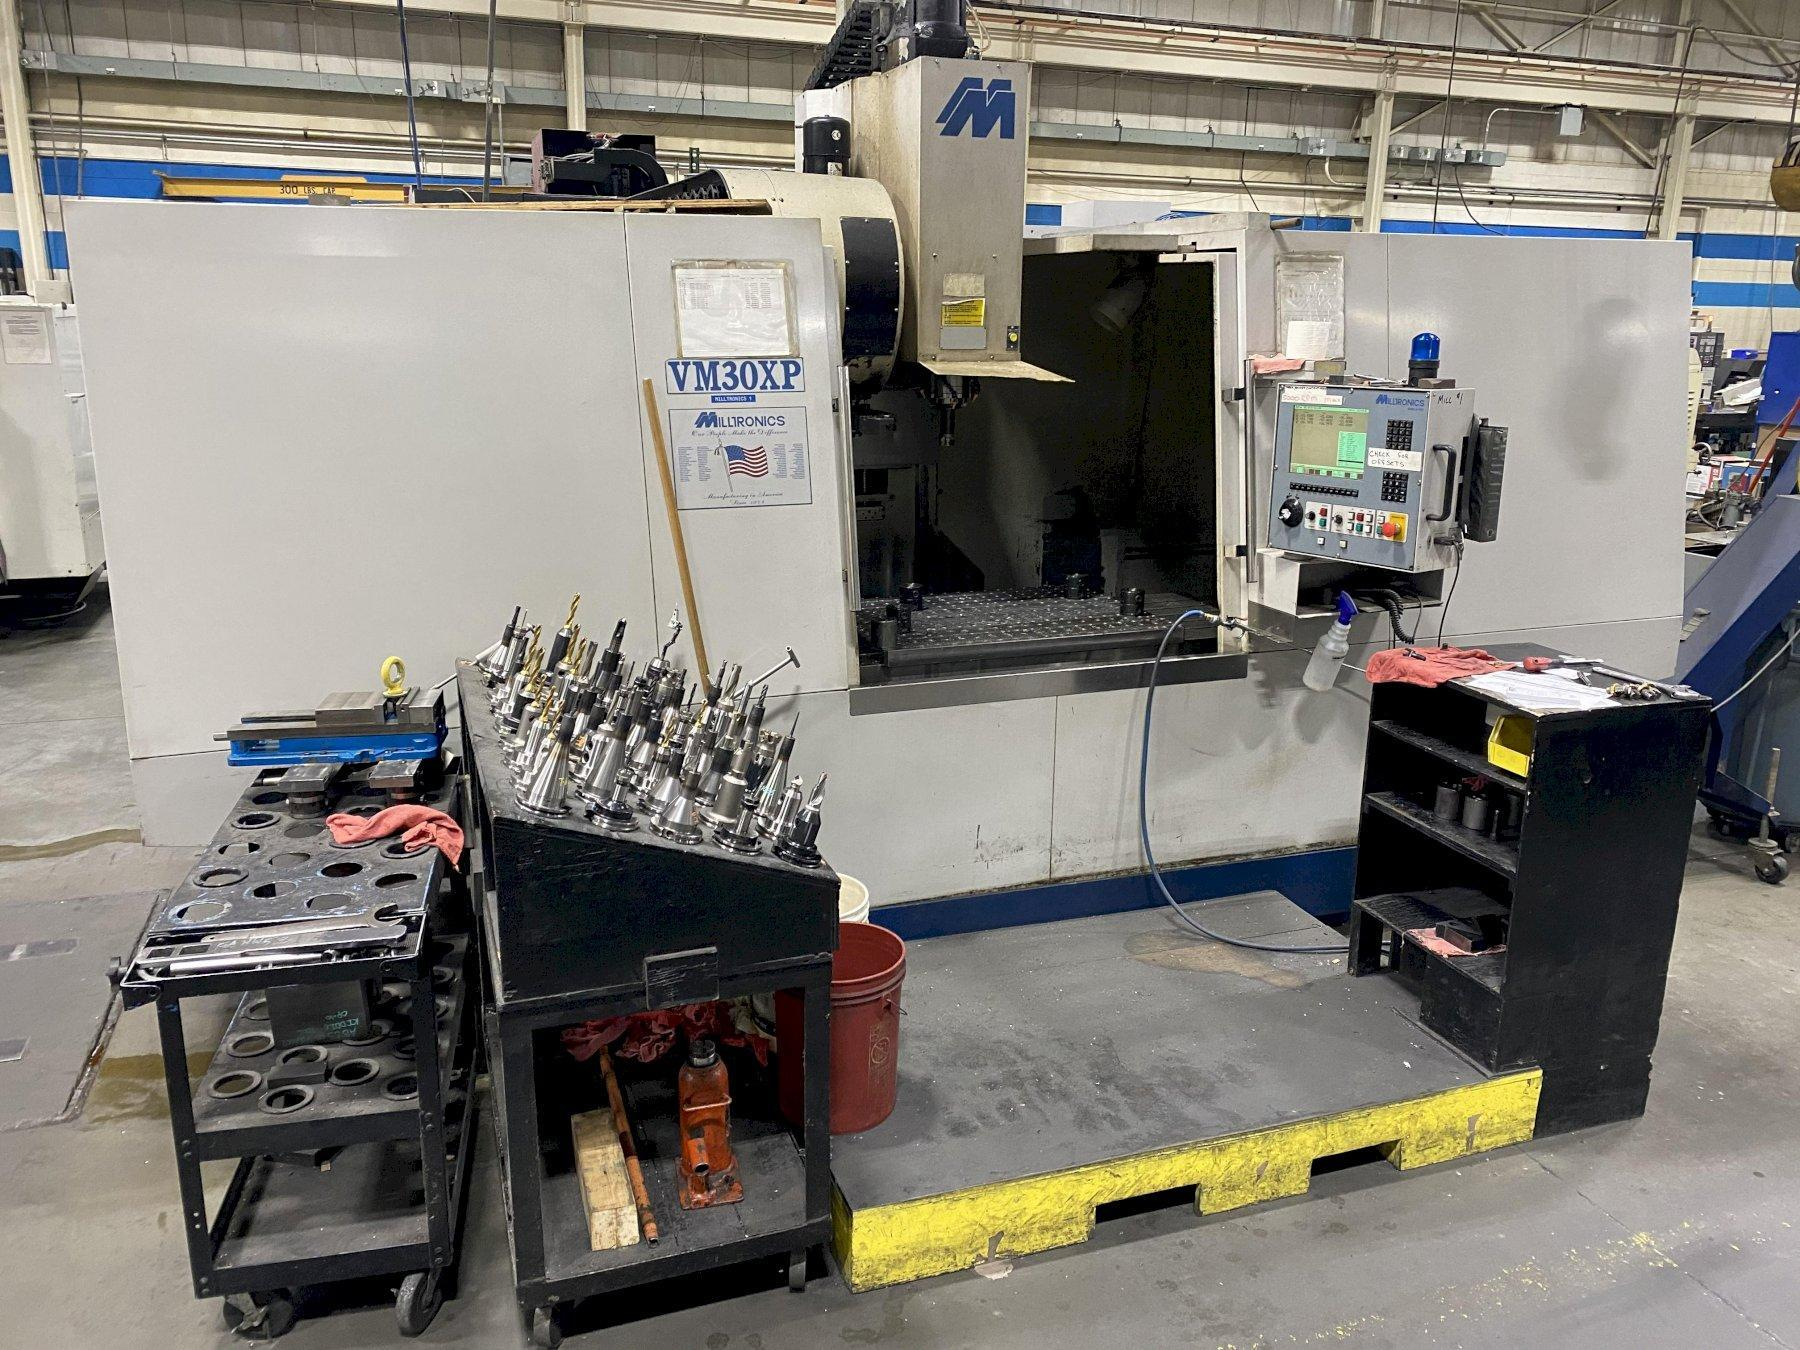 2007 Milltronics VM30 Vertical Machining Center